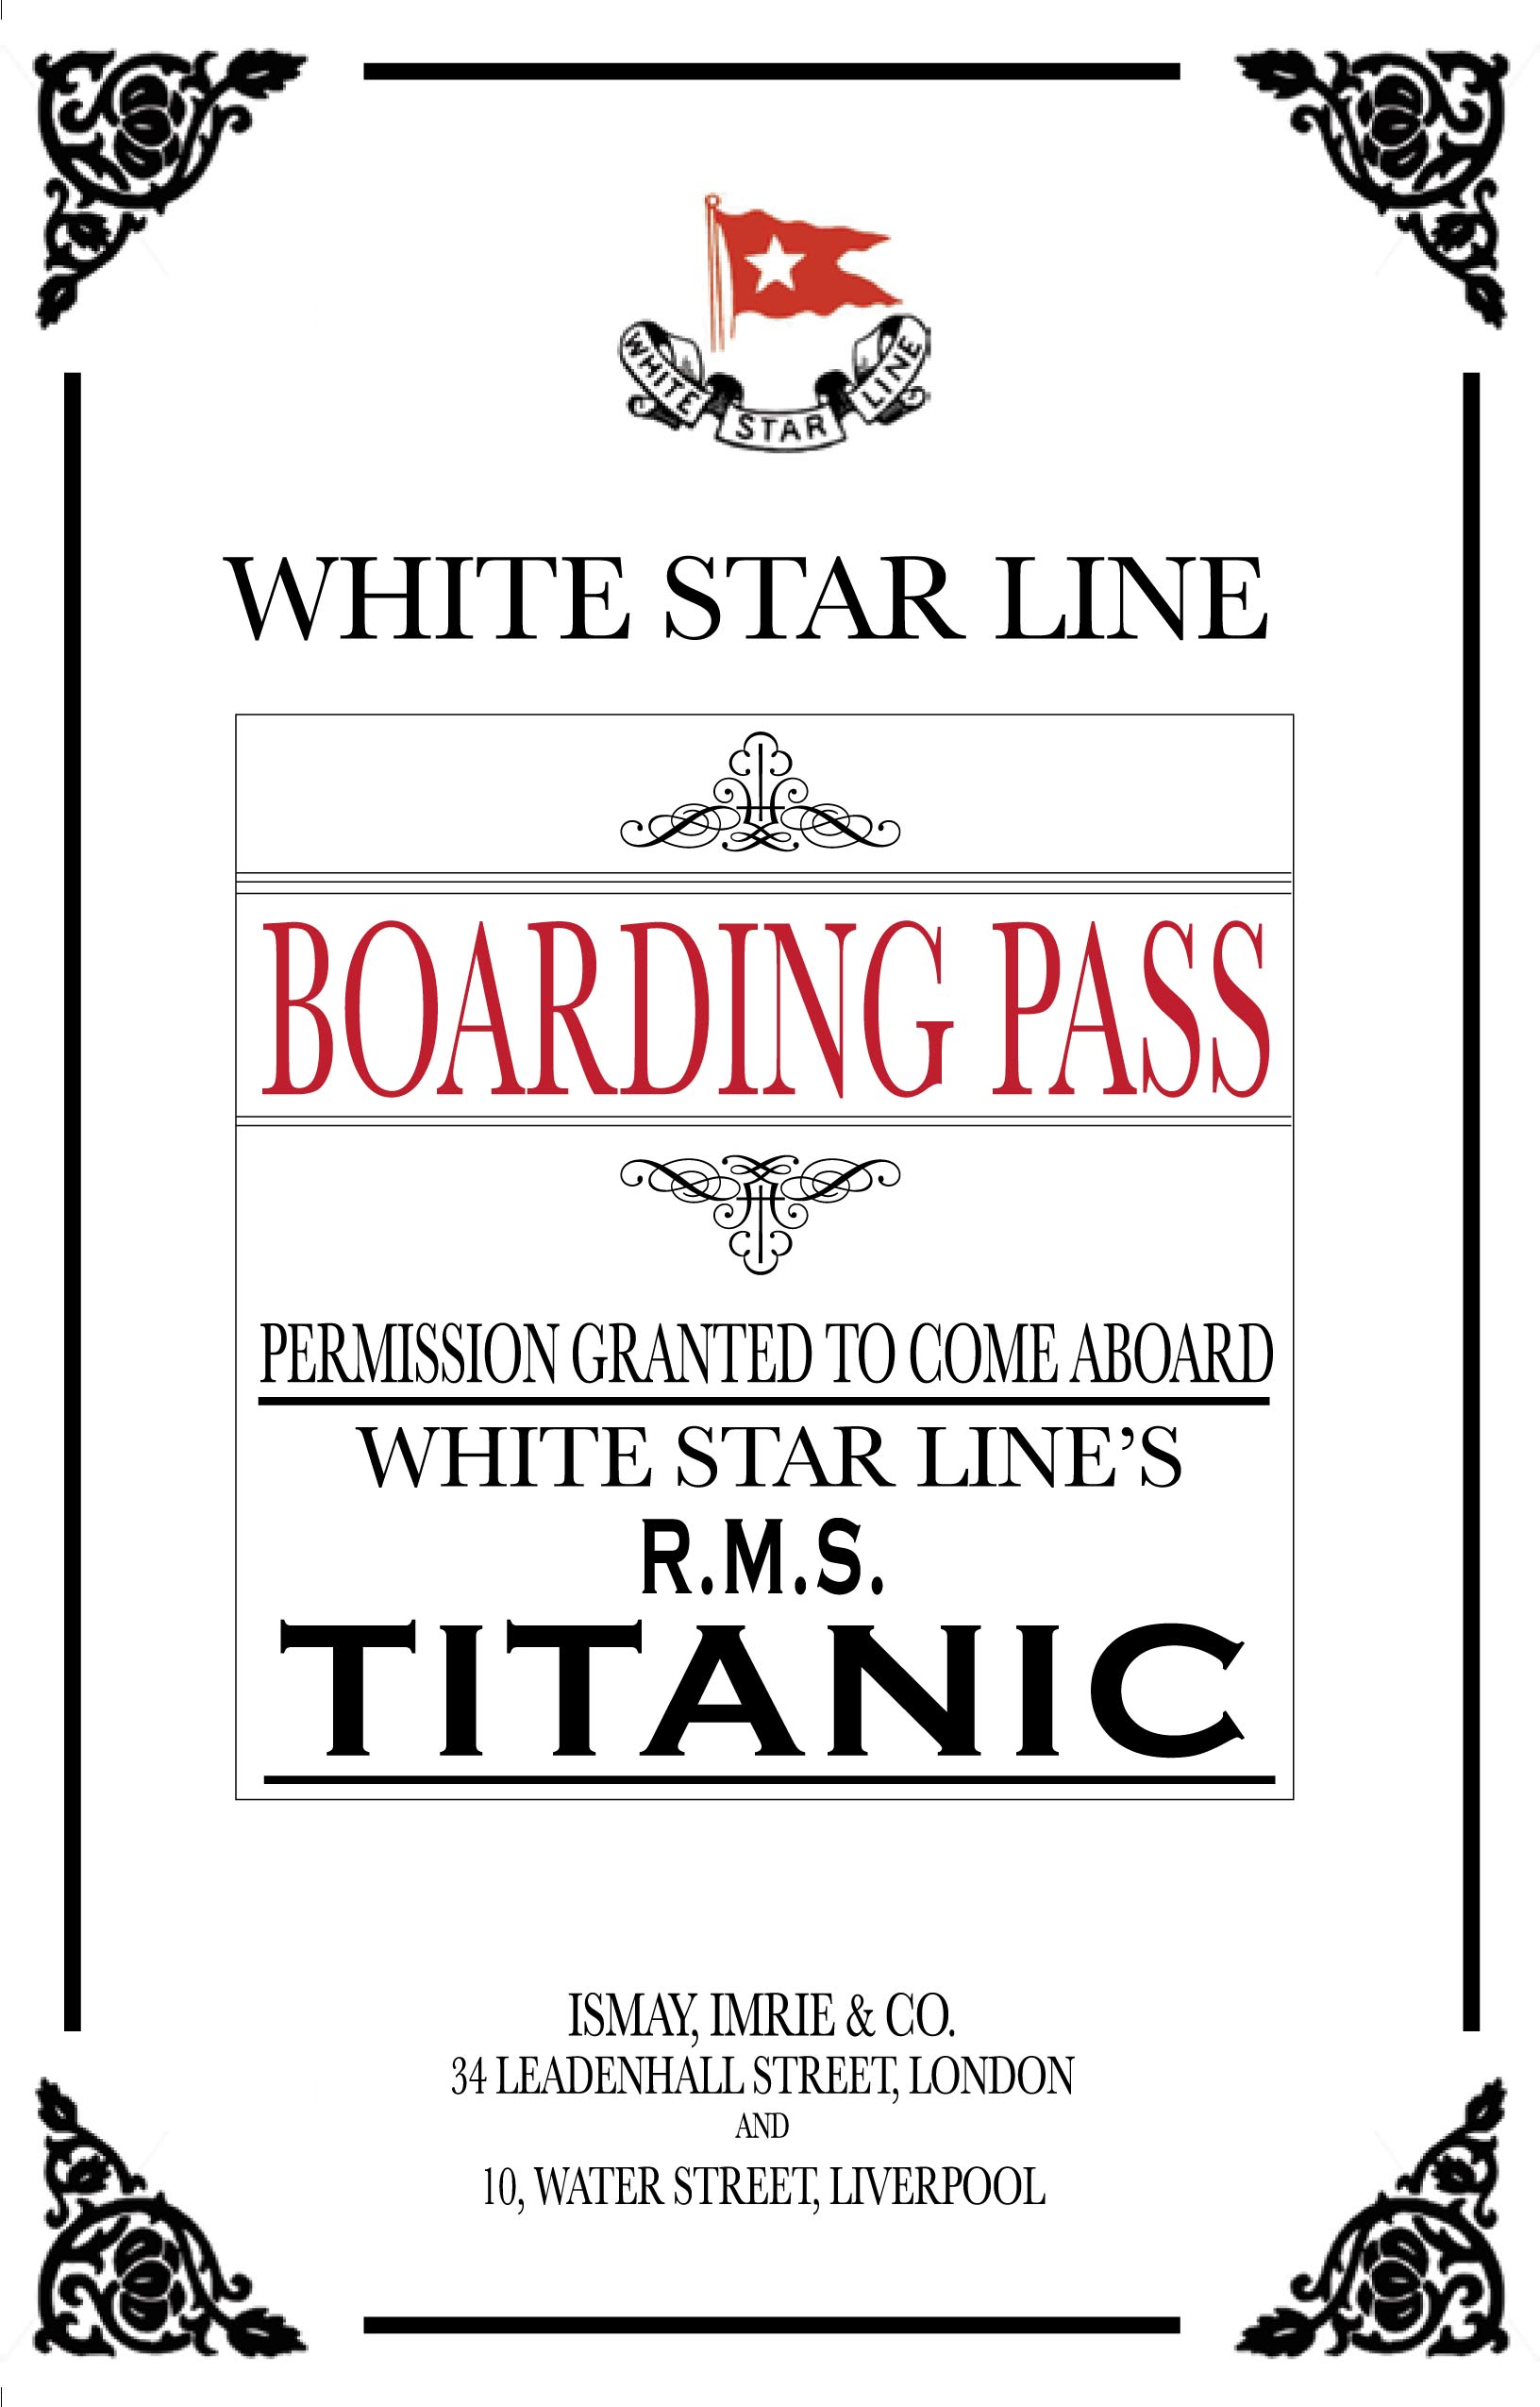 Titanic Dinner Party Invitations And Awards Yup You Read